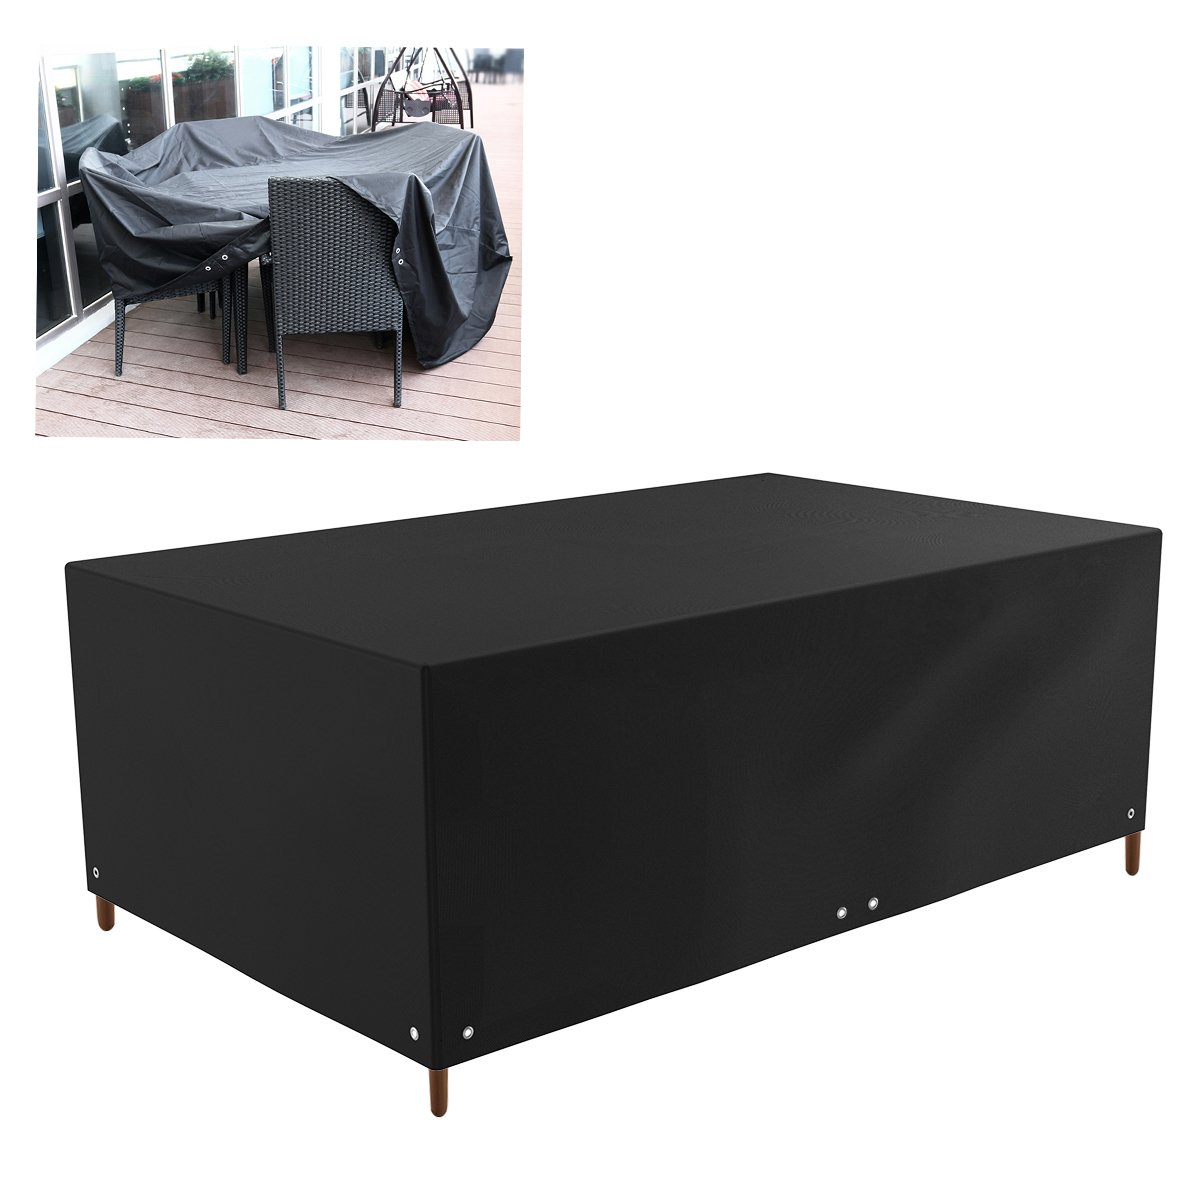 WINOMO Outdoor Patio Furniture Protector Covers Waterproof Sofa Table Chair Set Cover (Black)